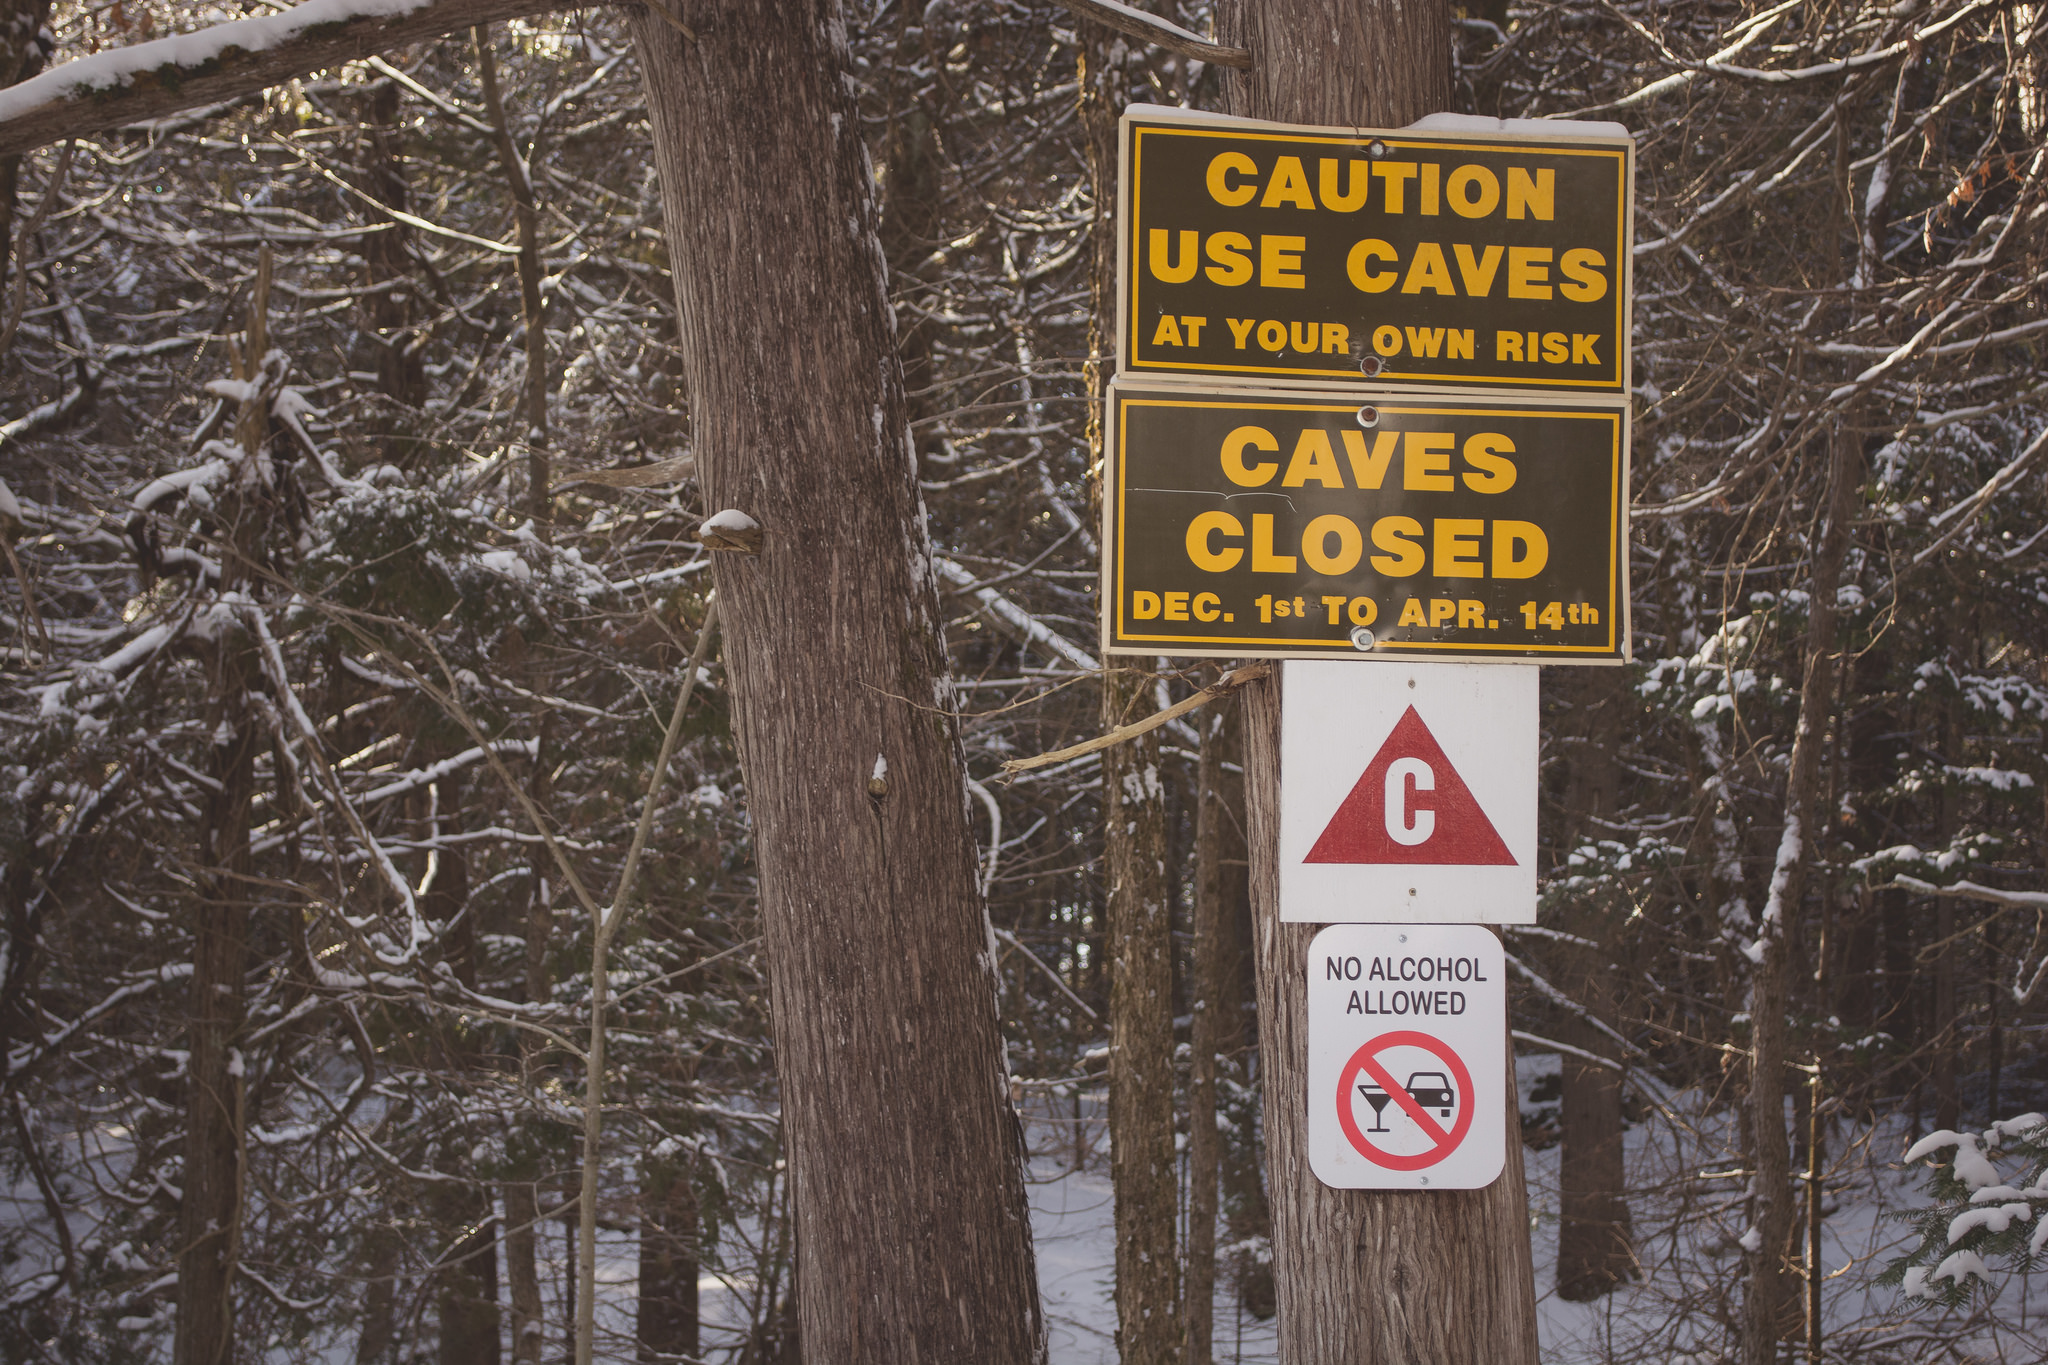 Caves Closed (1/200s, f/5.3, ISO400)